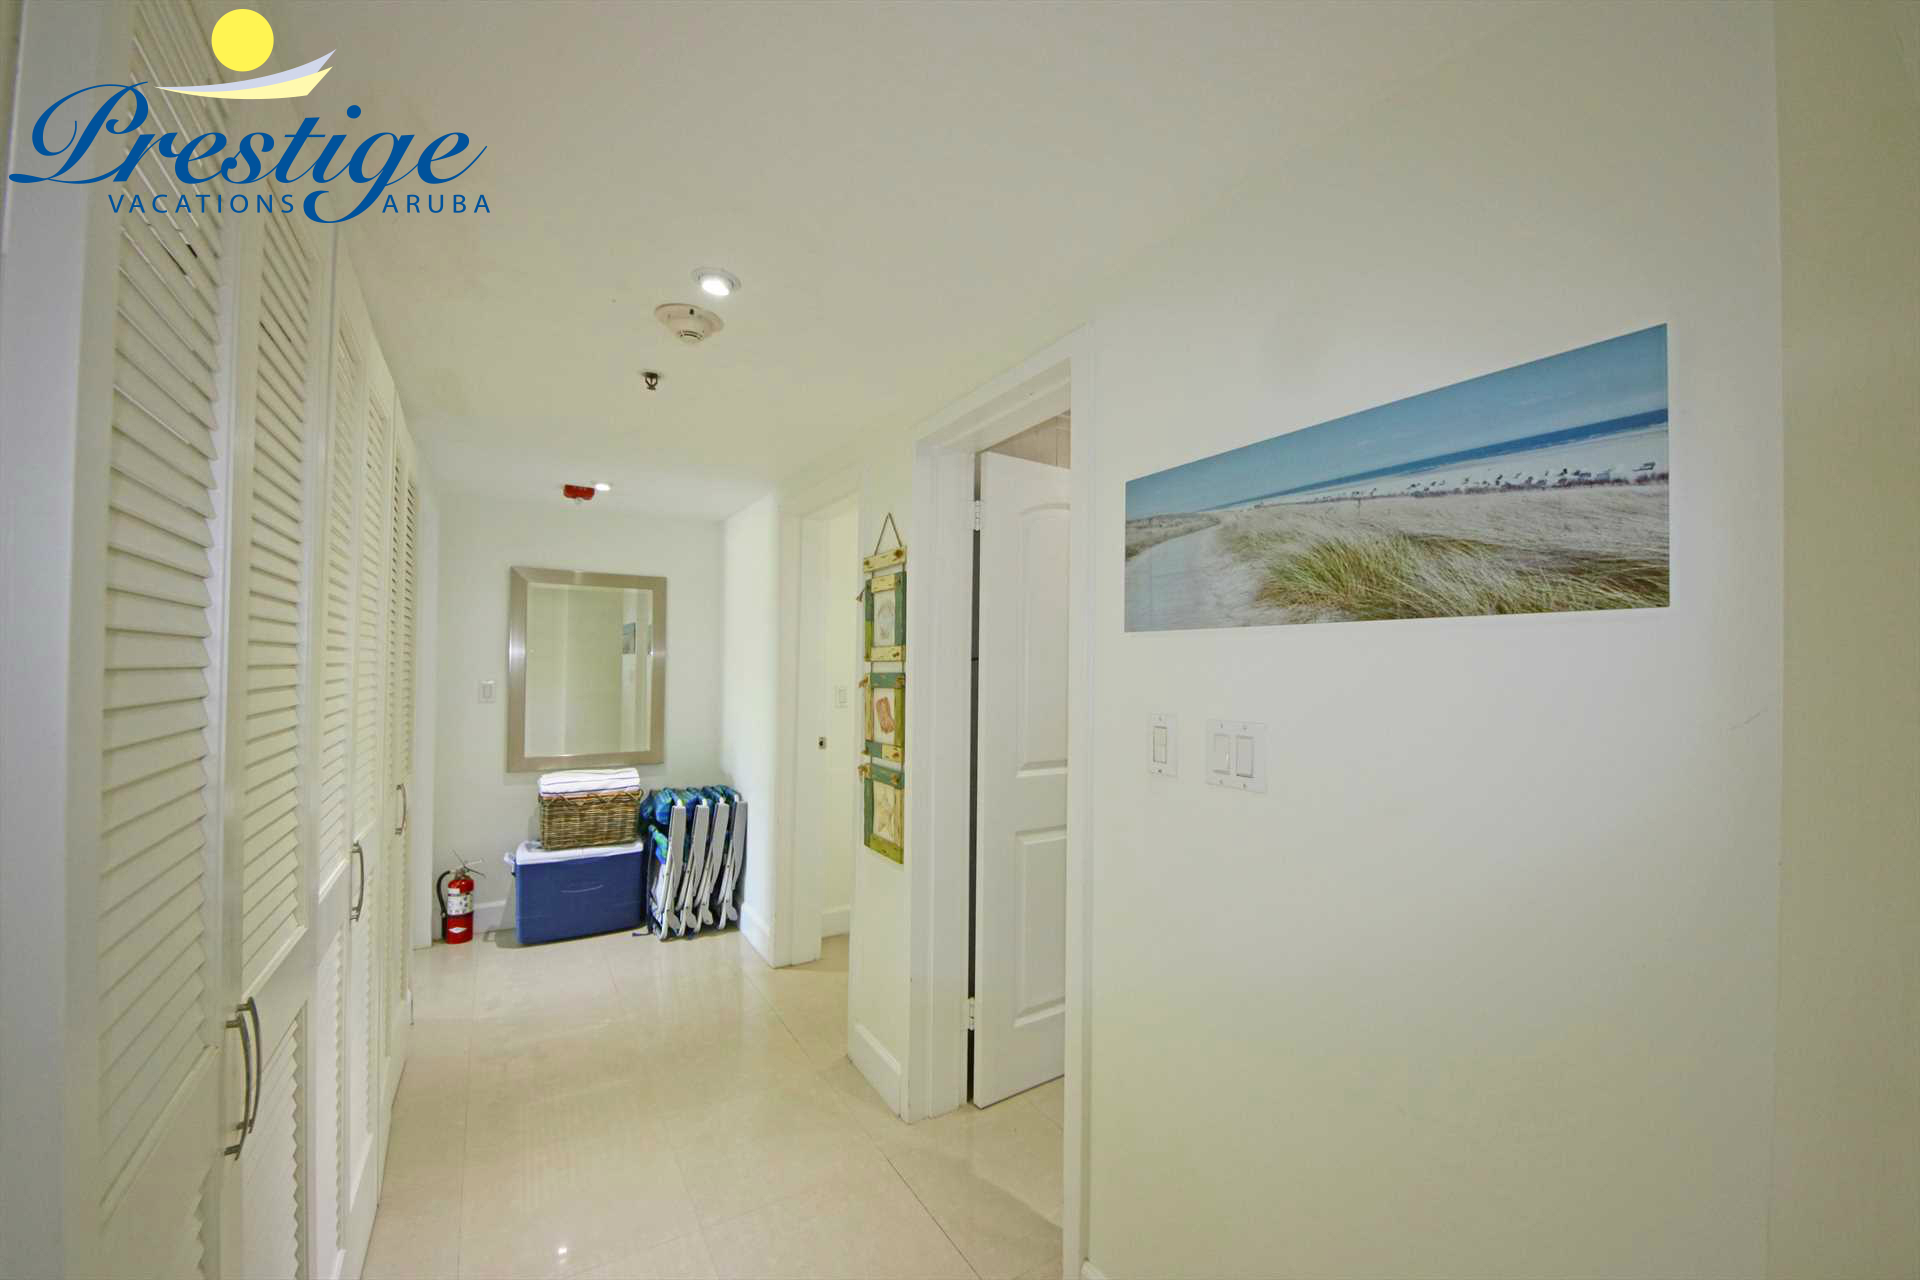 The corridor with laundry facility and access to the bedrooms